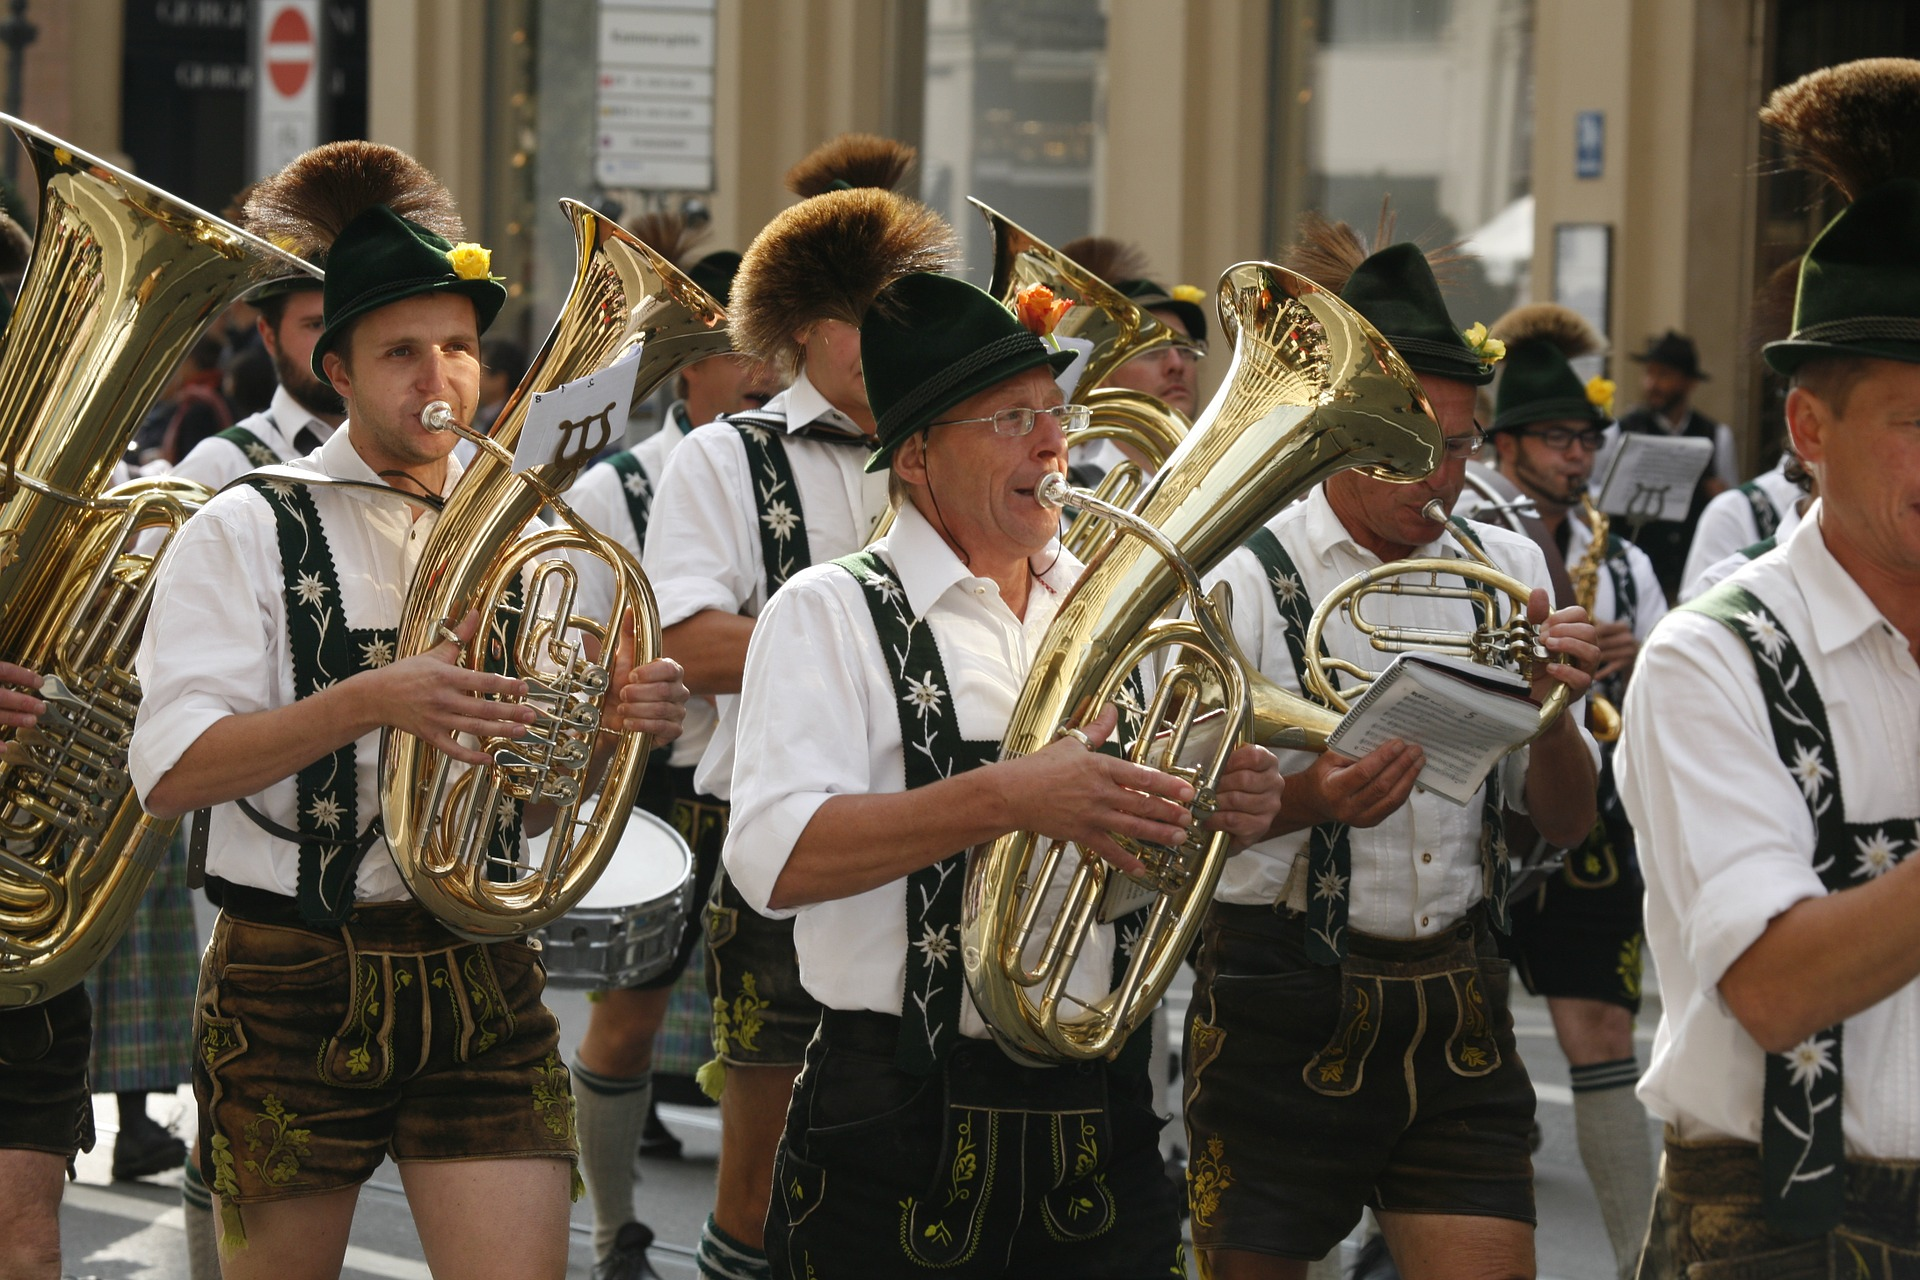 where to buy oktoberfest costumes in berlin